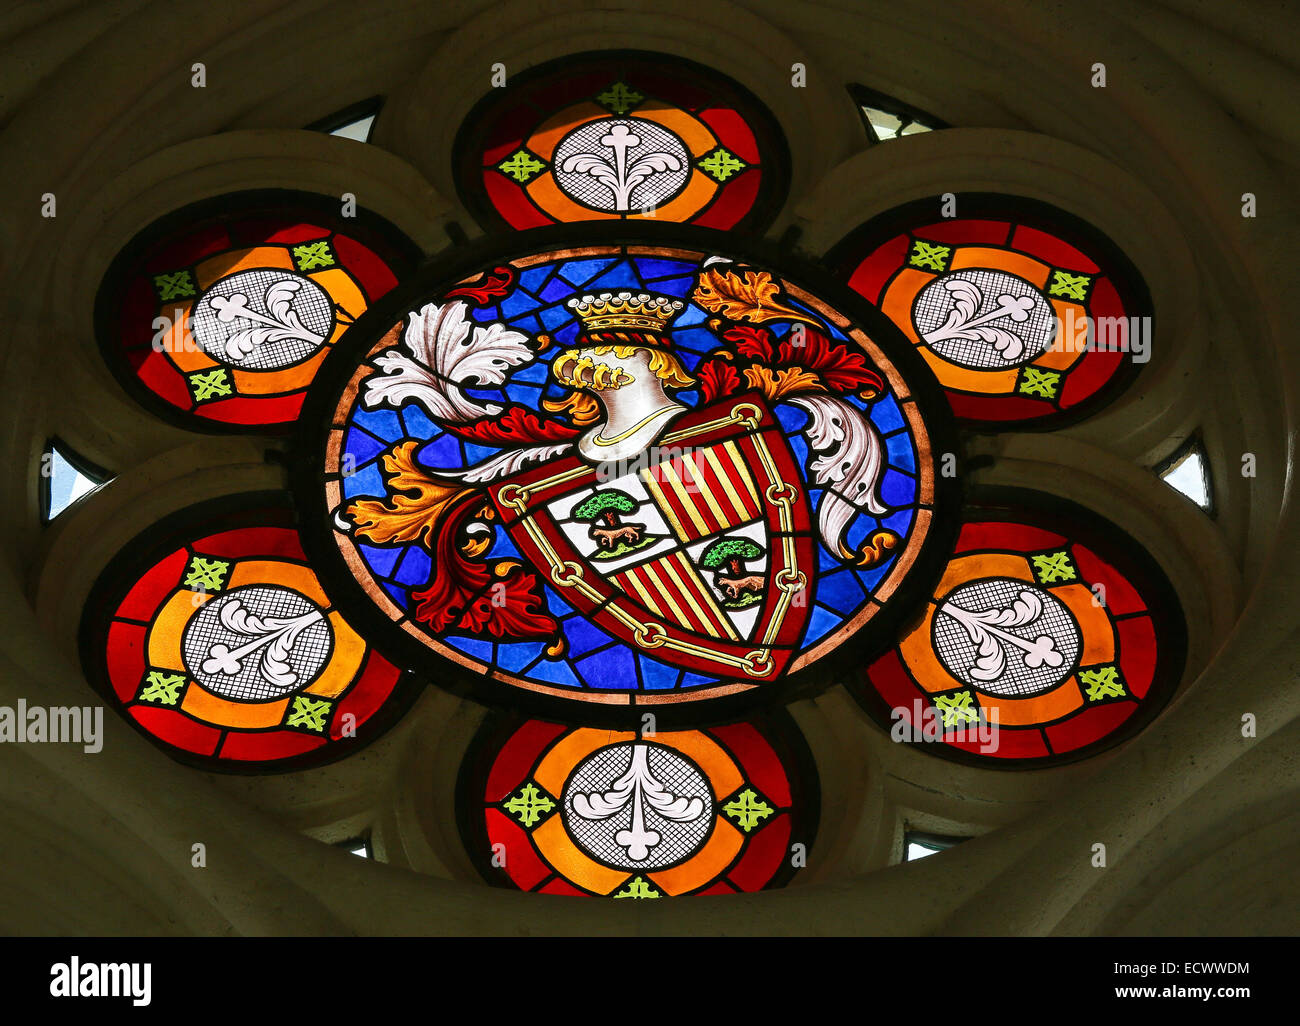 Stained glass window depicting a Coat of Arms in the cathedral of Burgos, Castille, Spain. - Stock Image